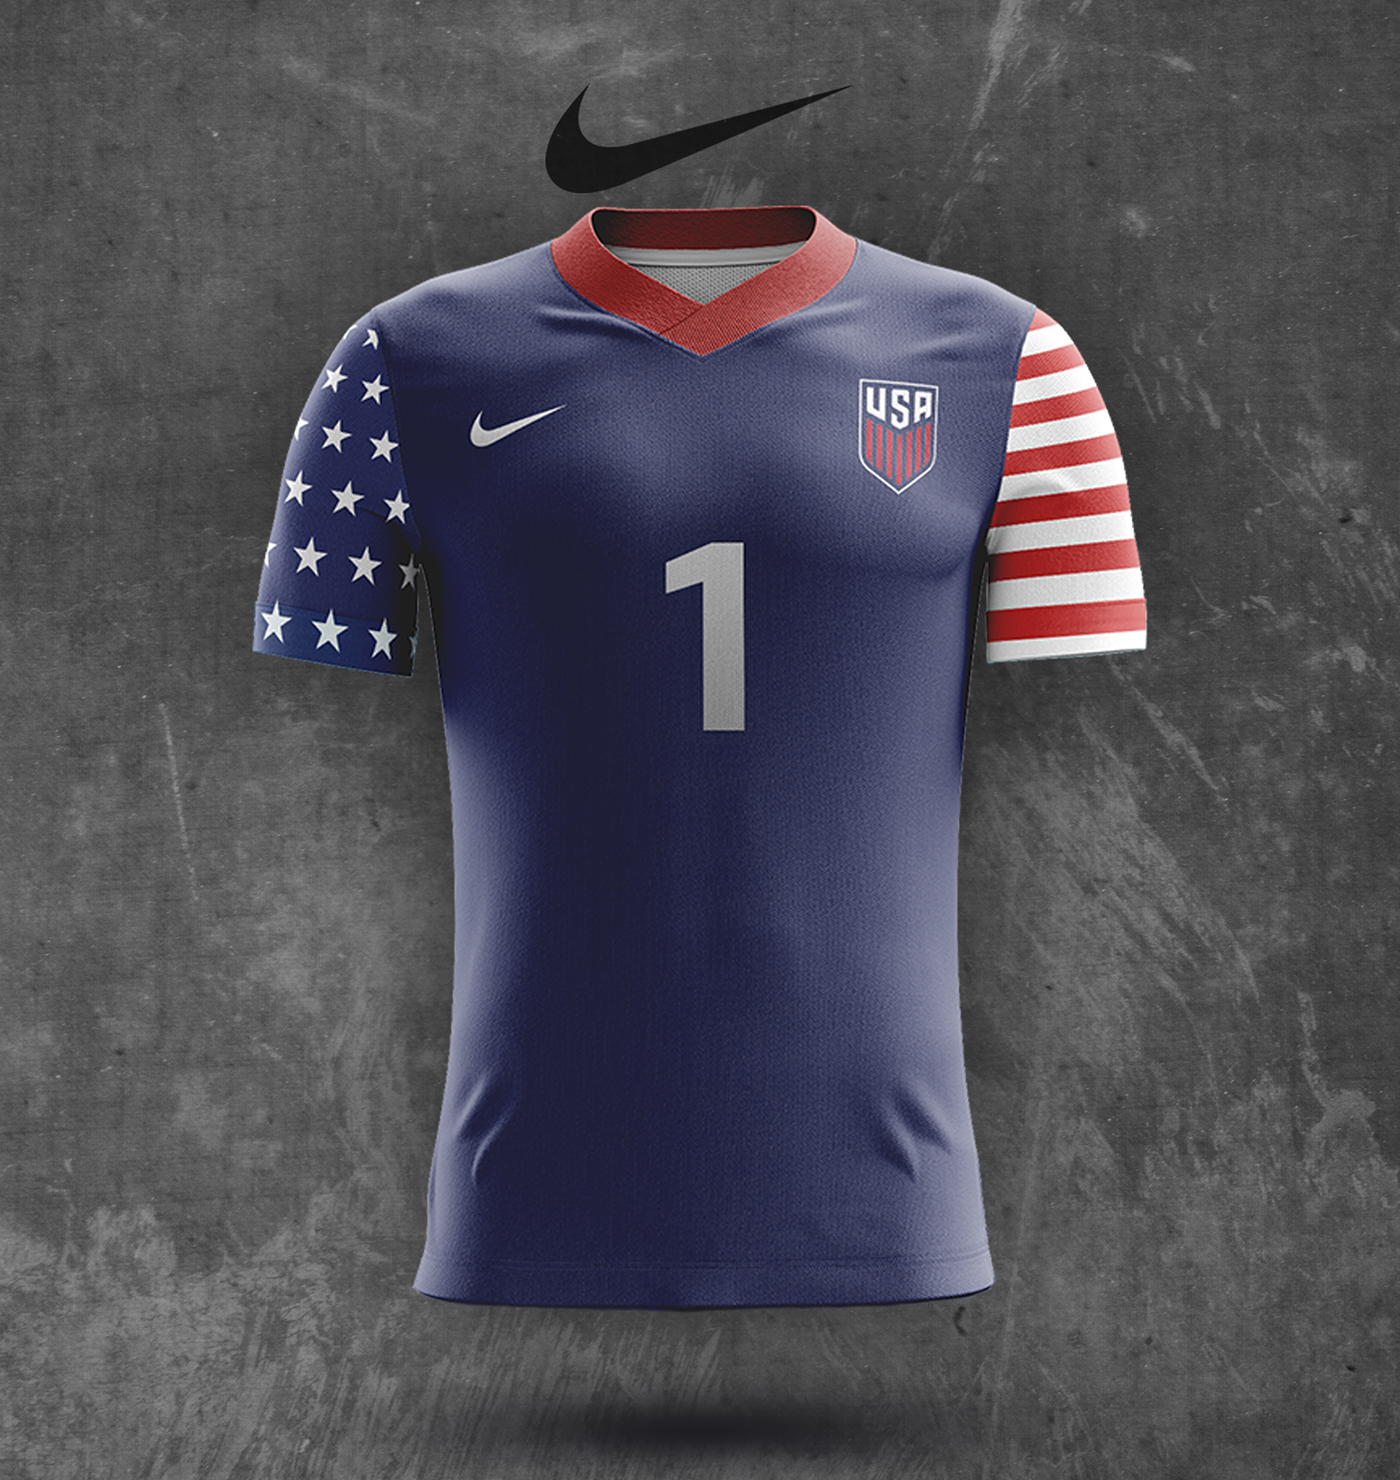 buy popular 7e1f9 651ed Concept US Men's National Team Nike Soccer Kit Designs on ...